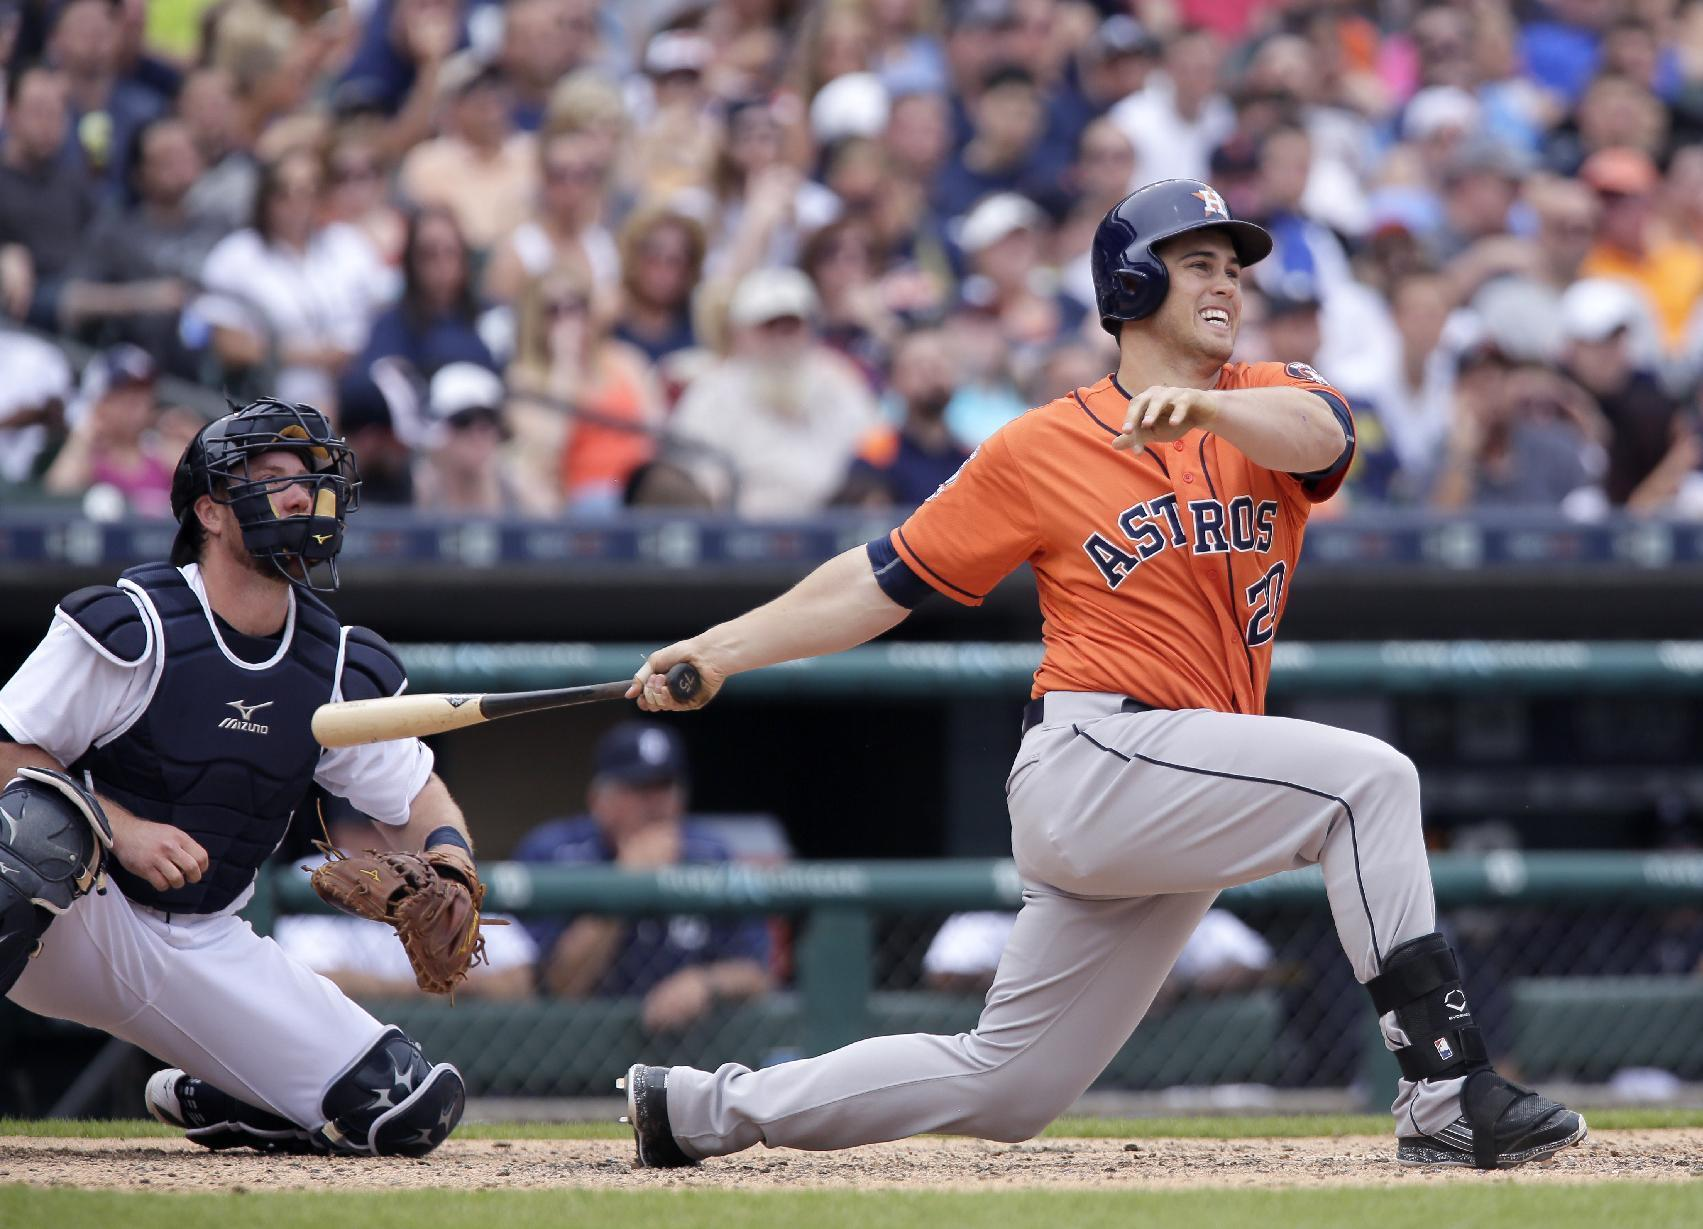 Astros rally for 10-8 win over Tigers, split 4-game series